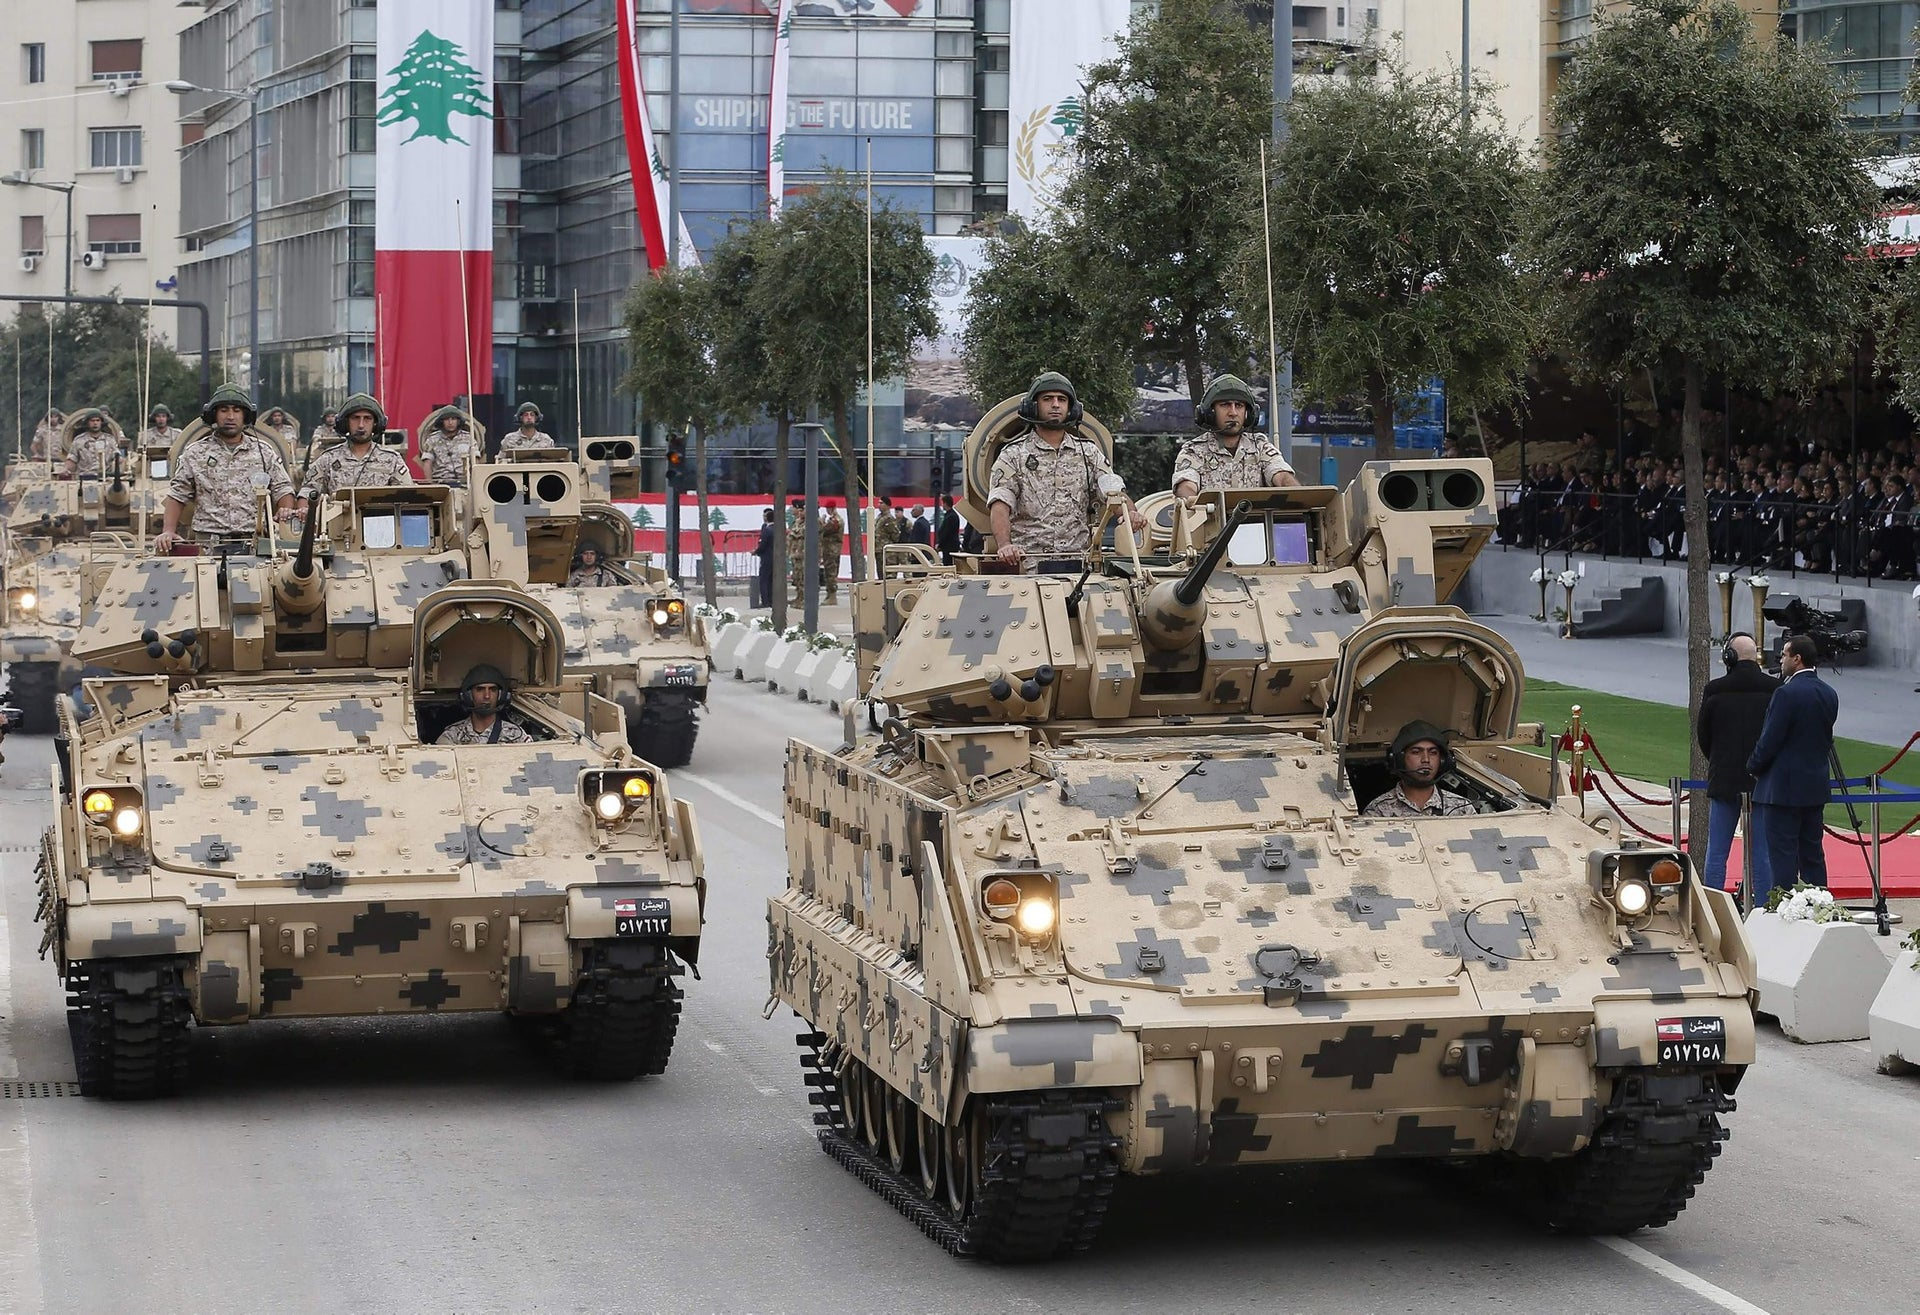 Lebanese soldiers take part in a military parade for Independence Day celebrations marking 74 years since the end of France's mandate in Lebanon, on November 22, 2017 in Beirut.